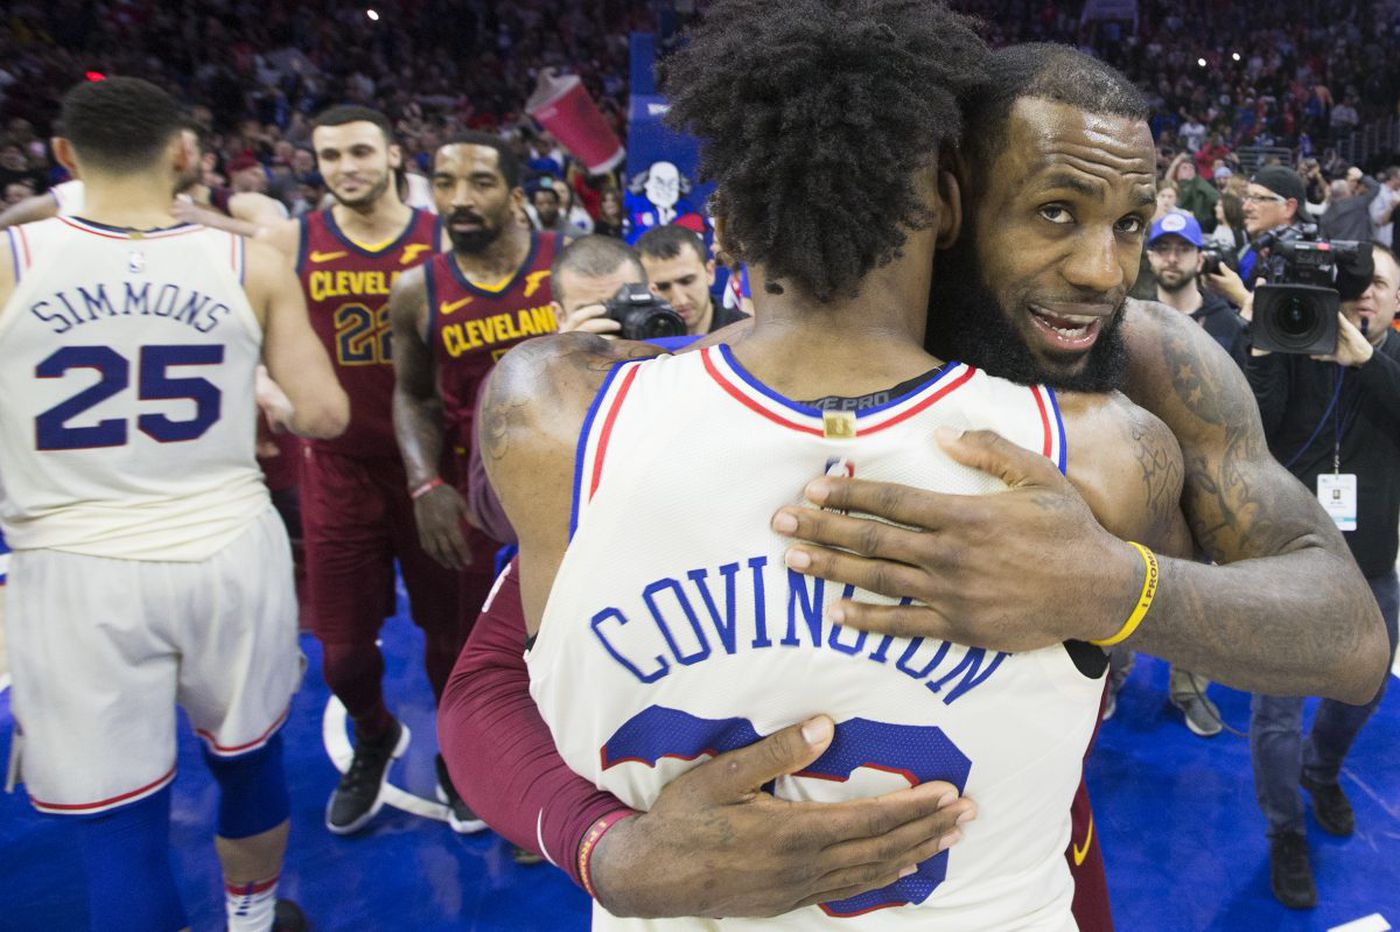 Watch: LeBron James says Sixers fans 'love their team' through ups and downs